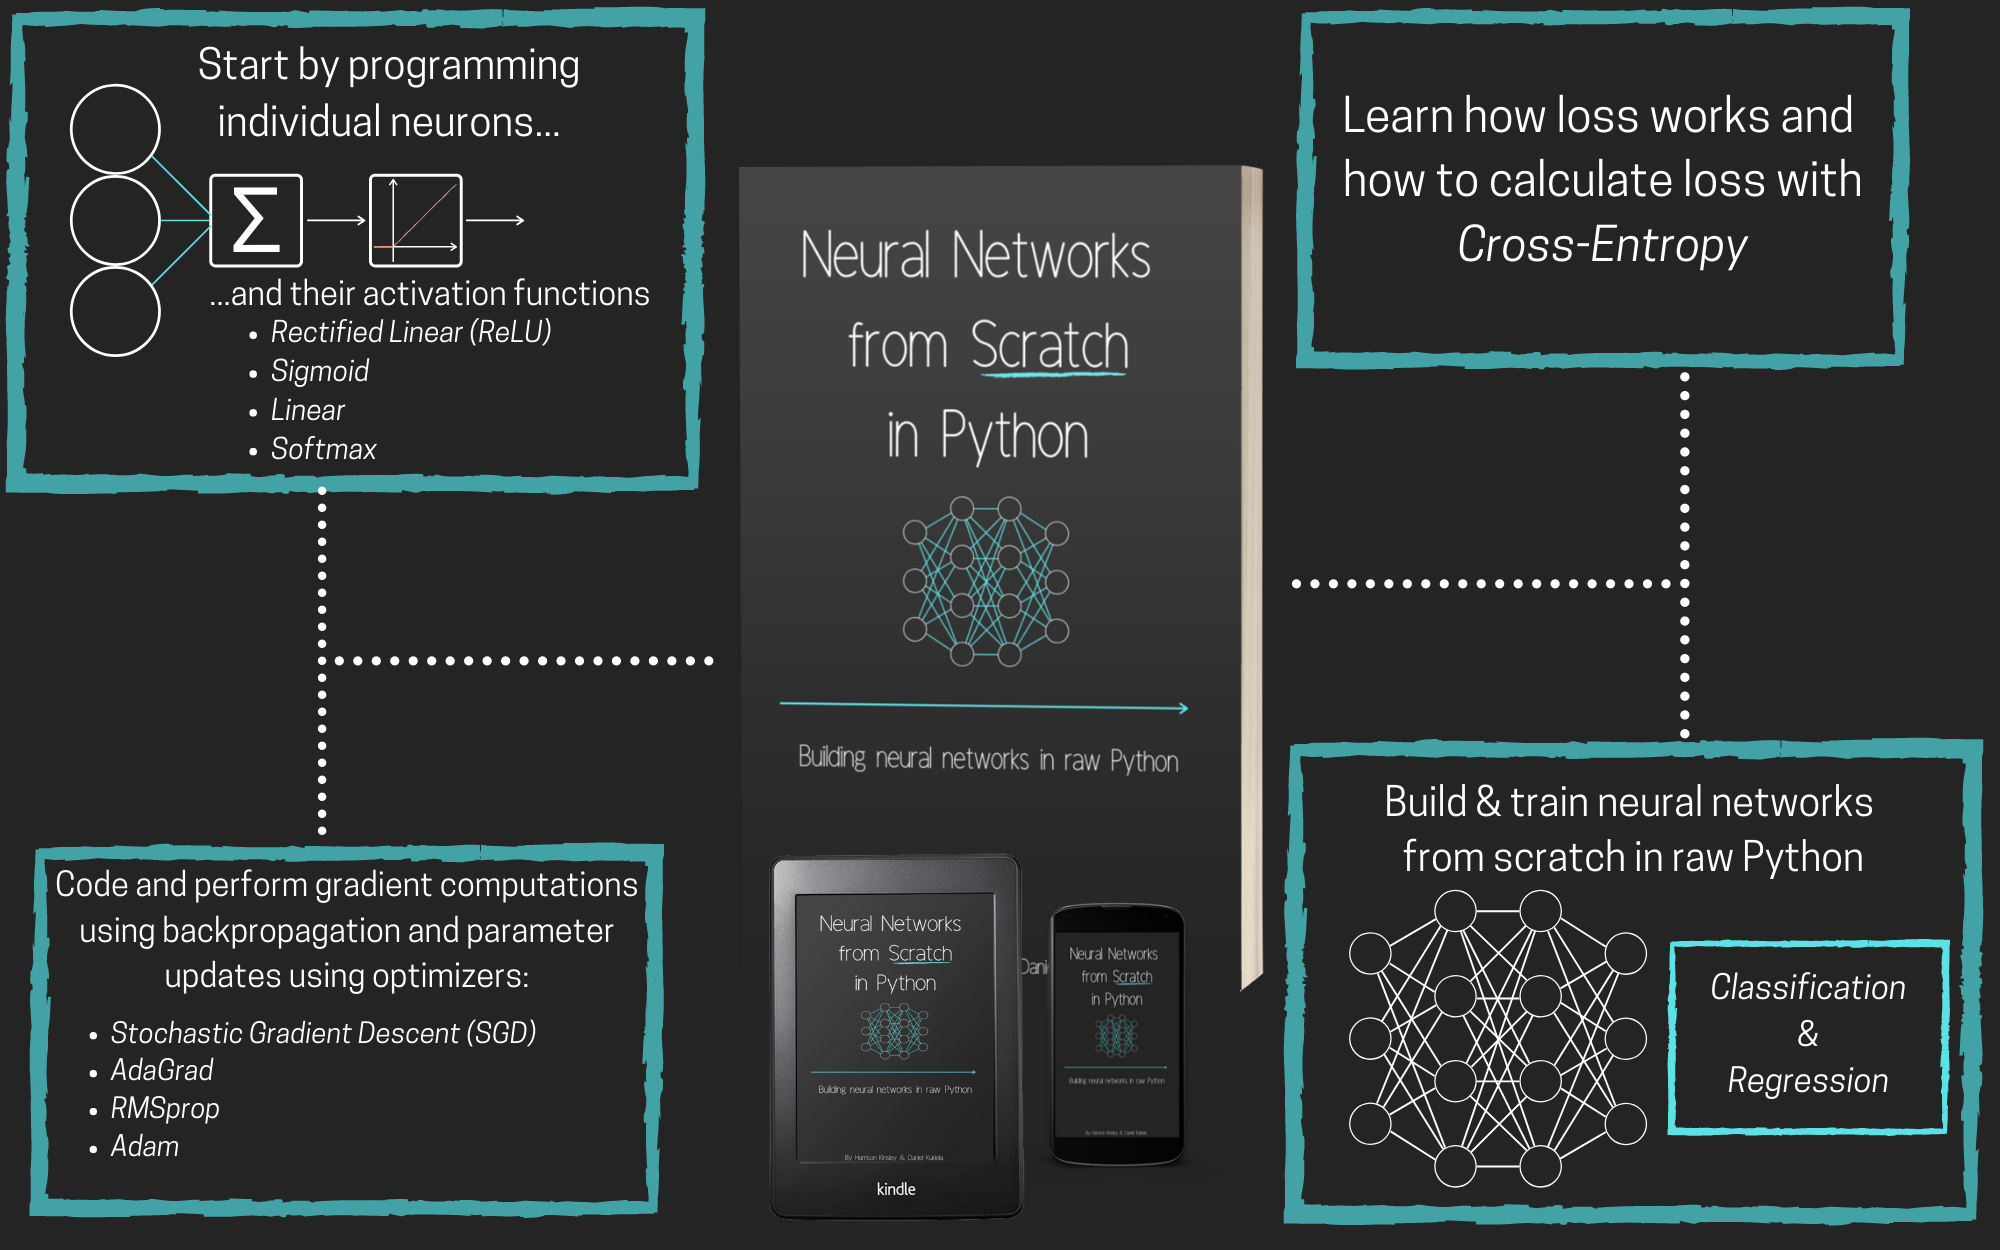 neural networks from scratch